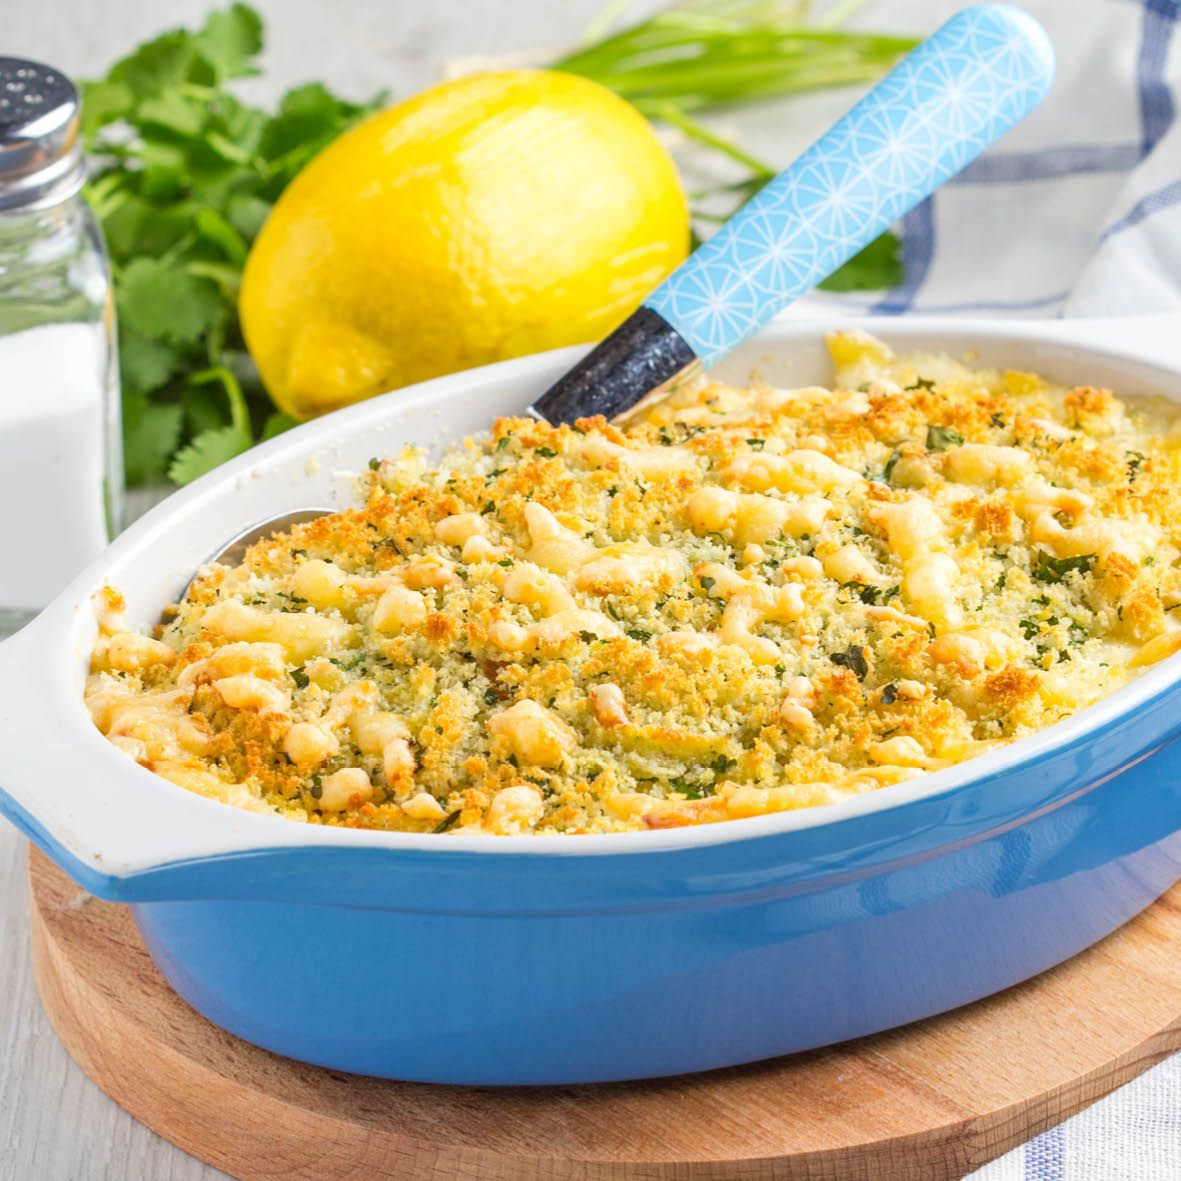 Parsnip_and_Potato_Parmesan_Gratin.jpg